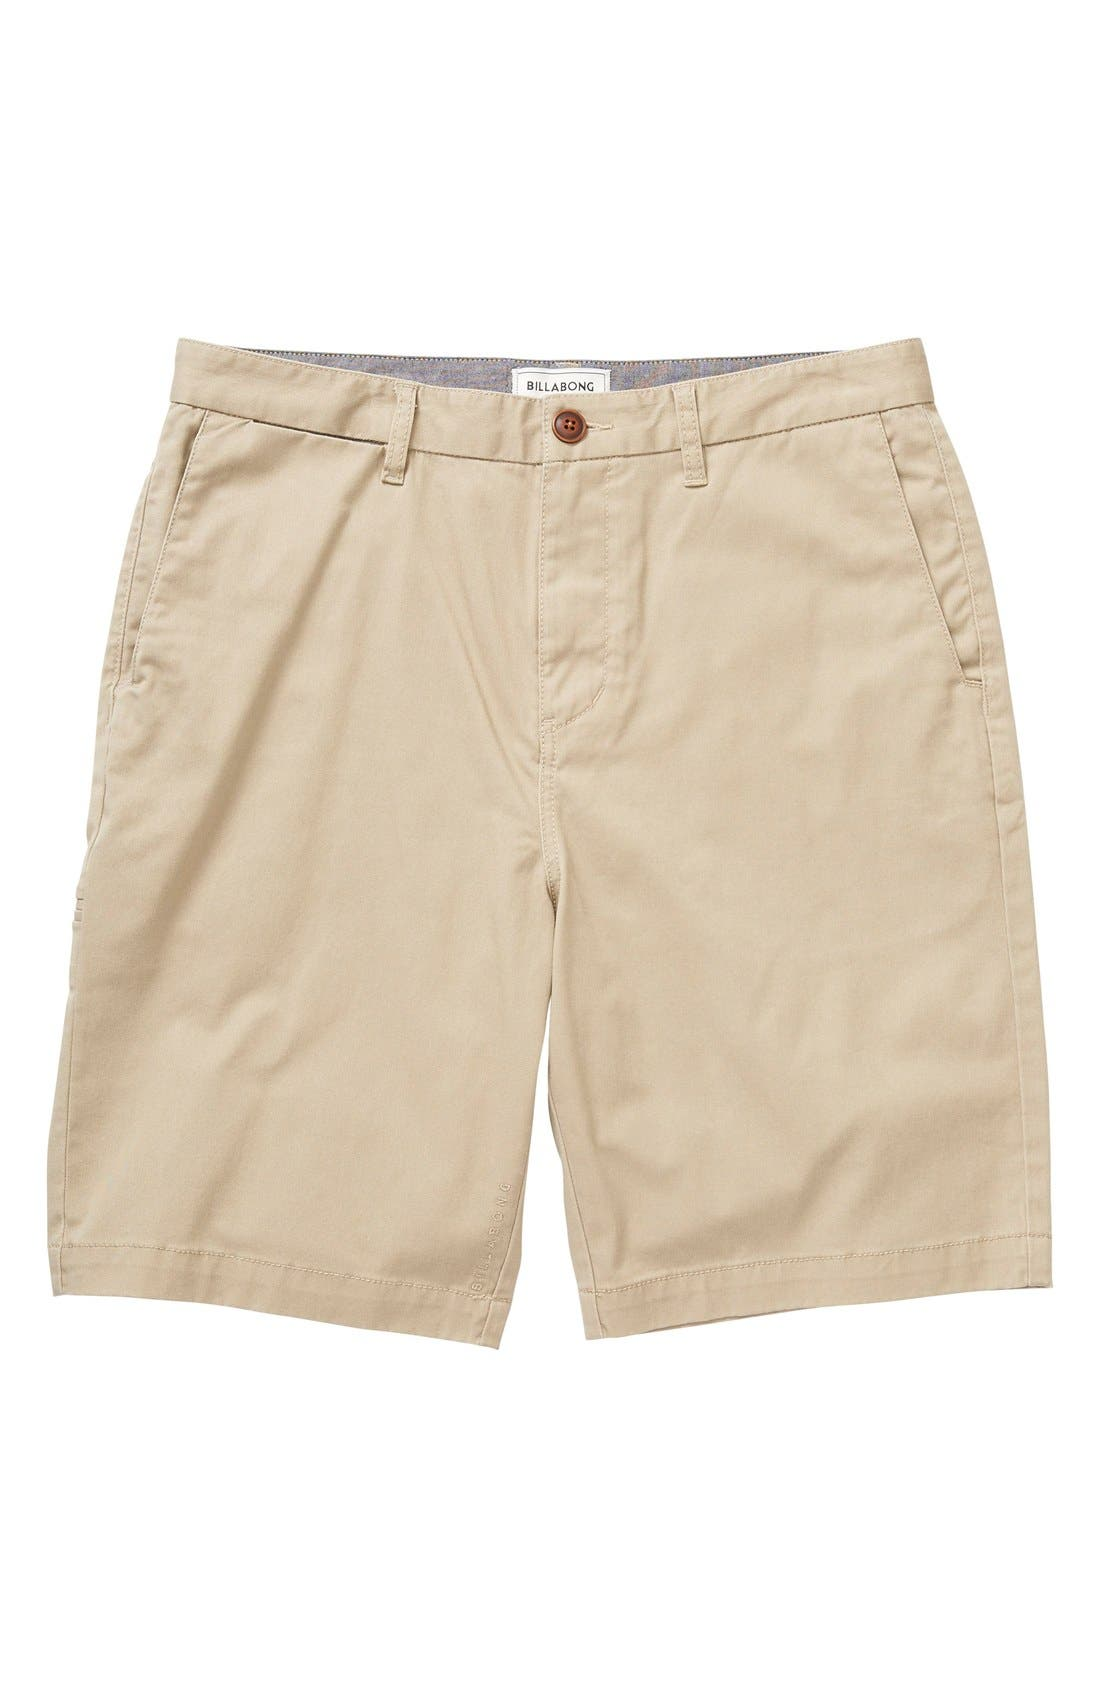 BILLABONG Carter Cotton Twill Shorts